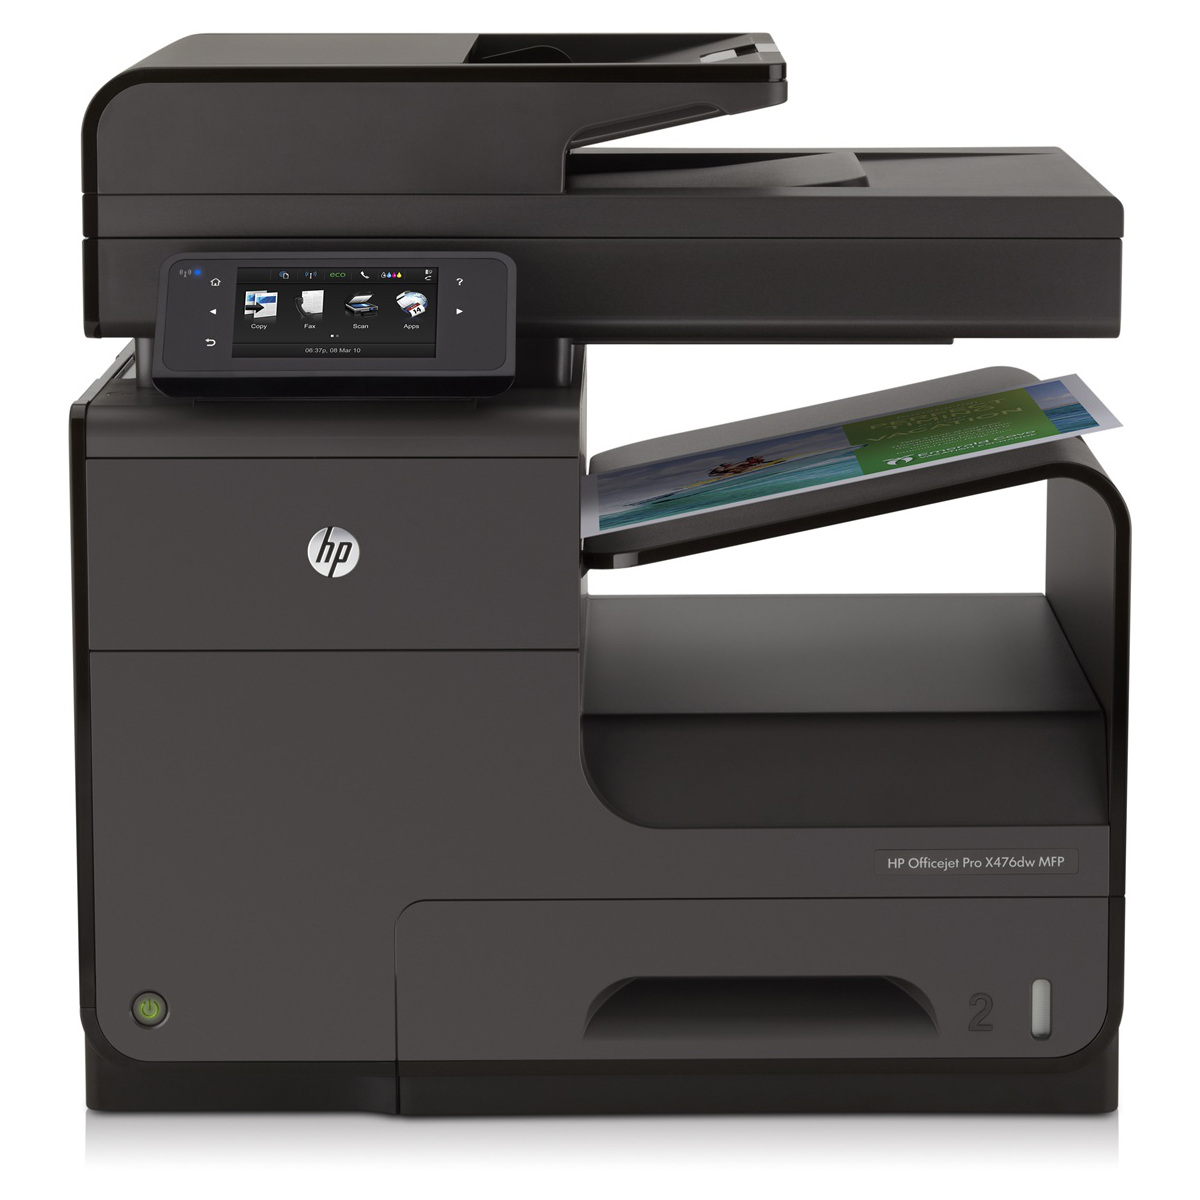 hp officejet pro x476dw imprimante multifonction hp sur ldlc. Black Bedroom Furniture Sets. Home Design Ideas